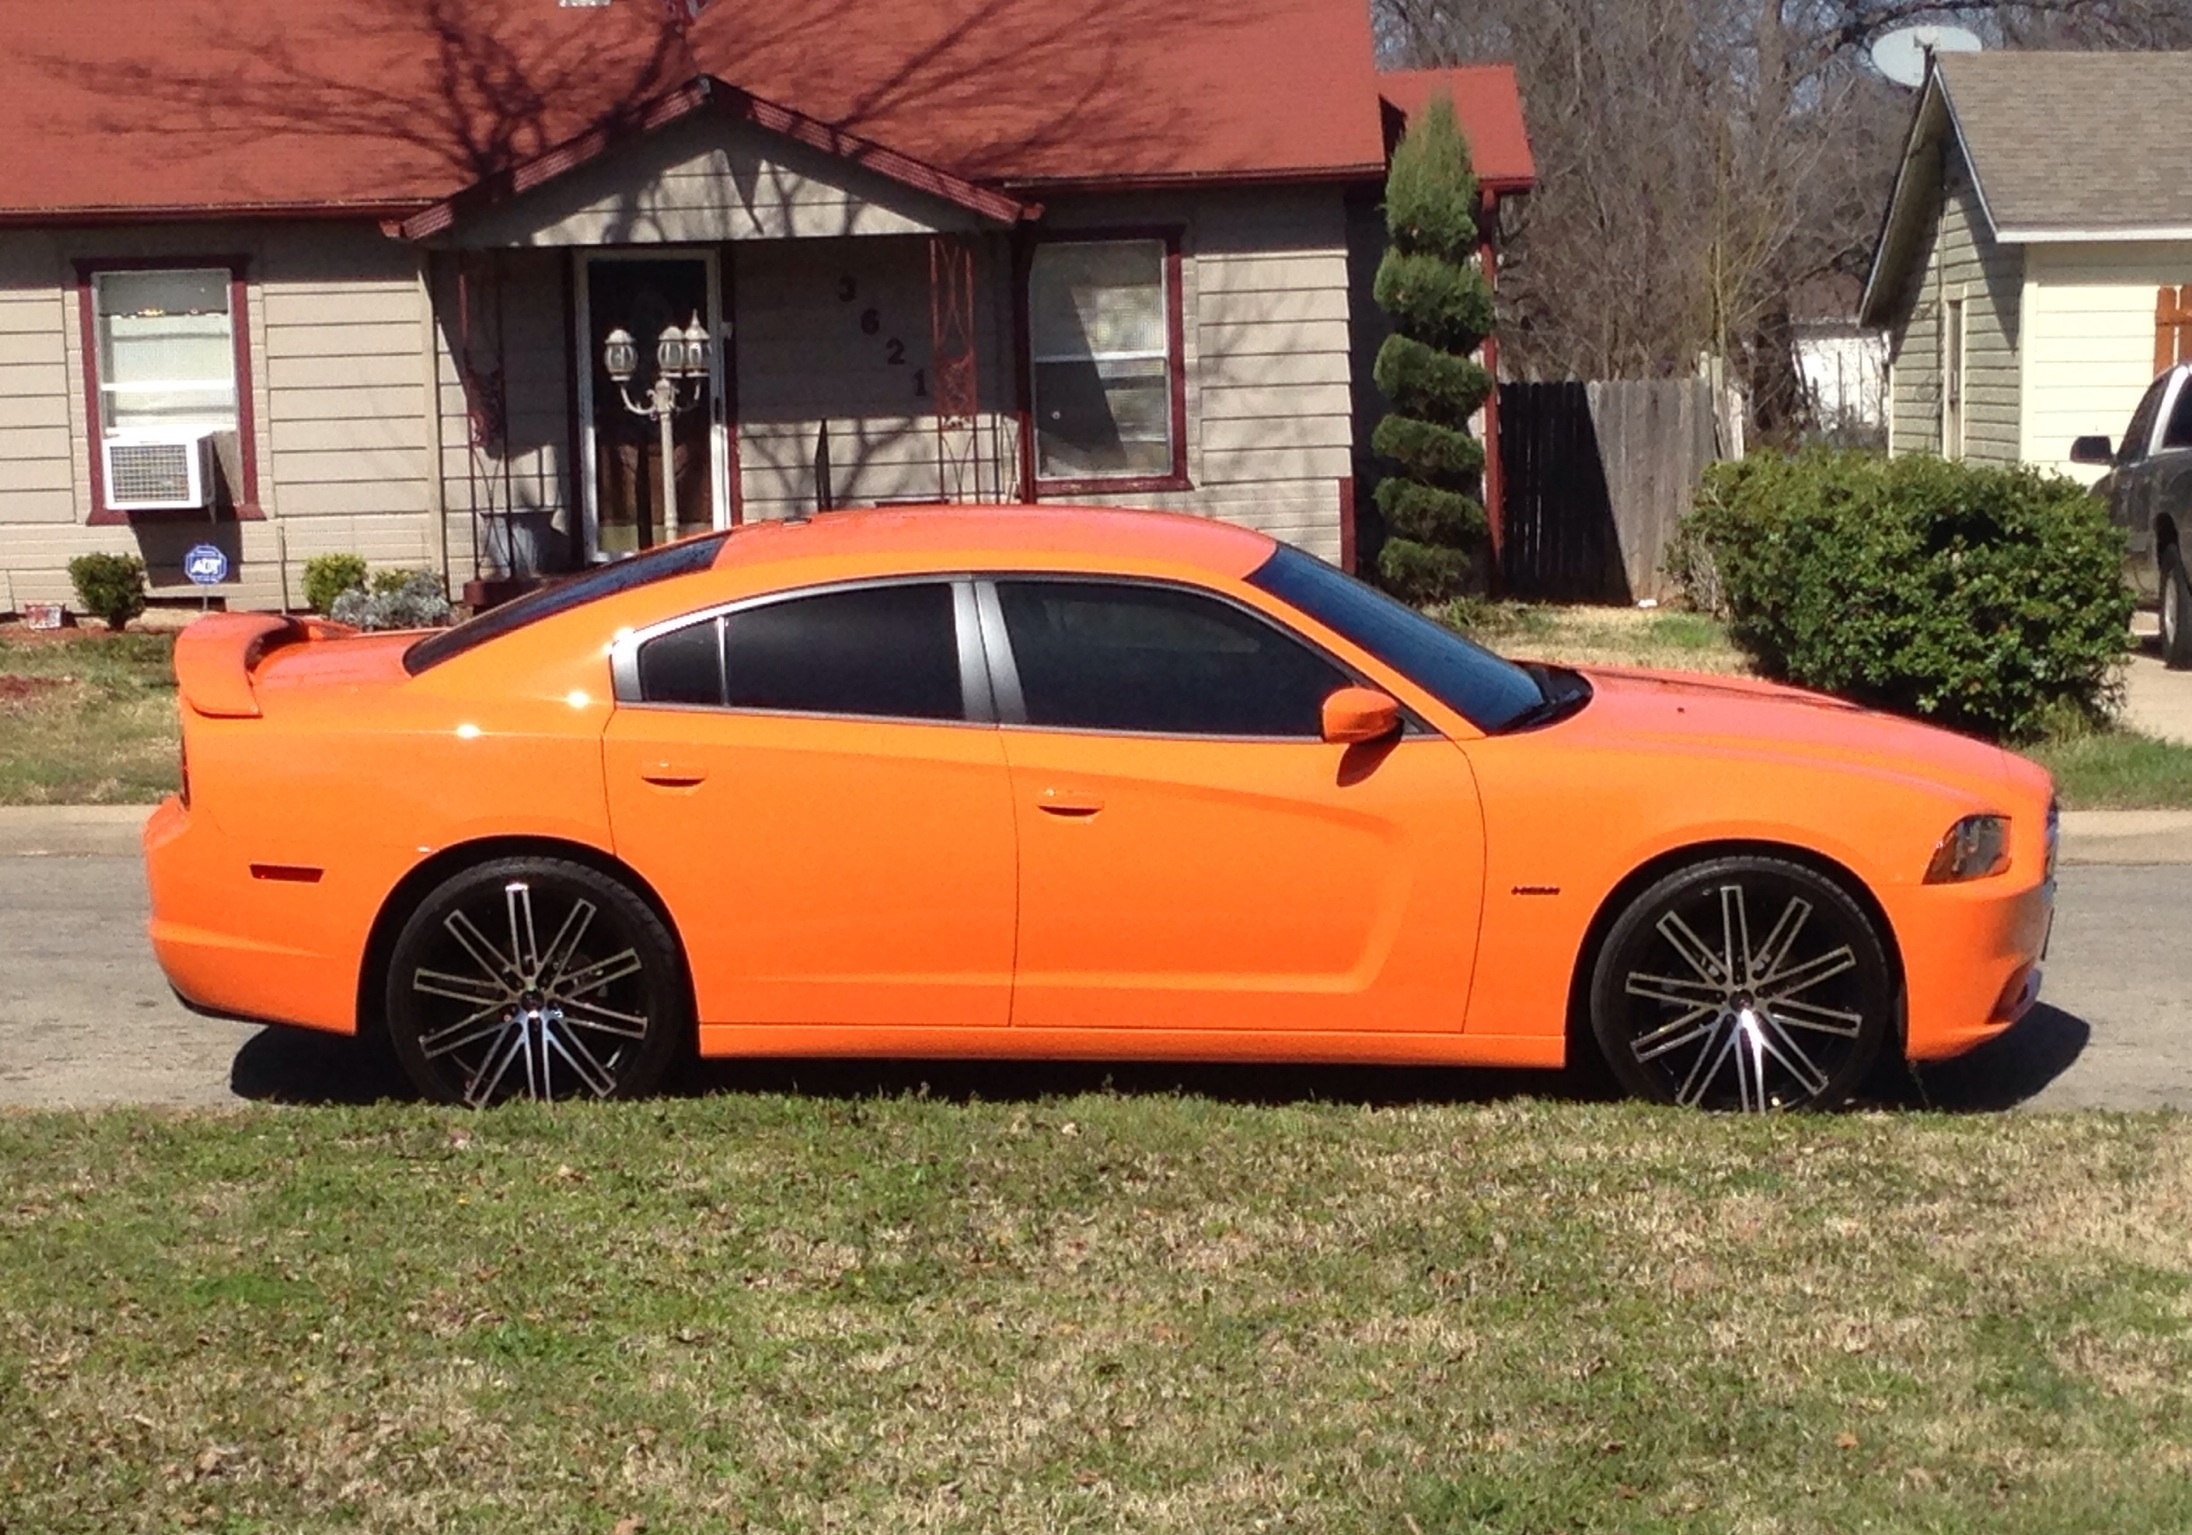 Pookey351@hotmail.com 2014 Dodge Charger